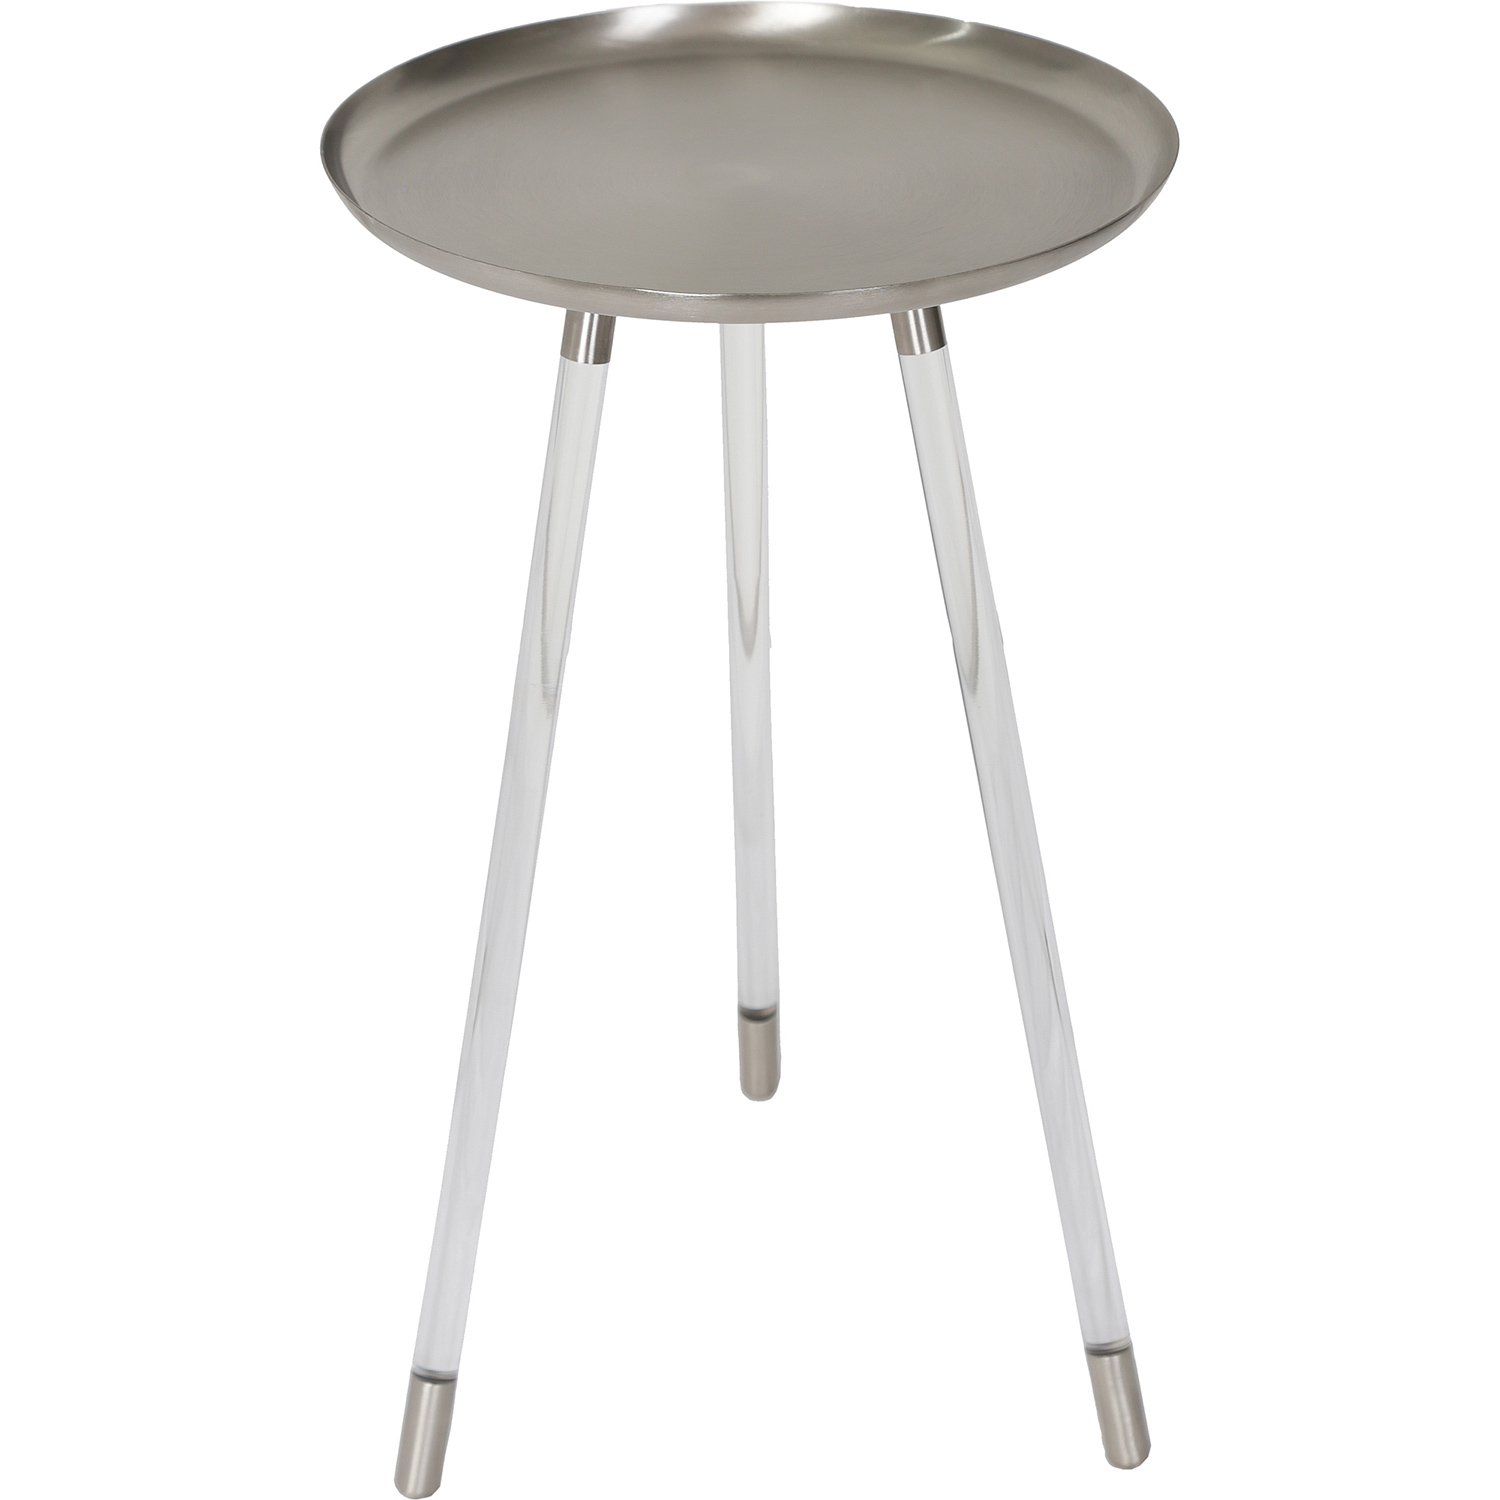 Ren-Wil Radbourne Accent Table - Pewter/Clear